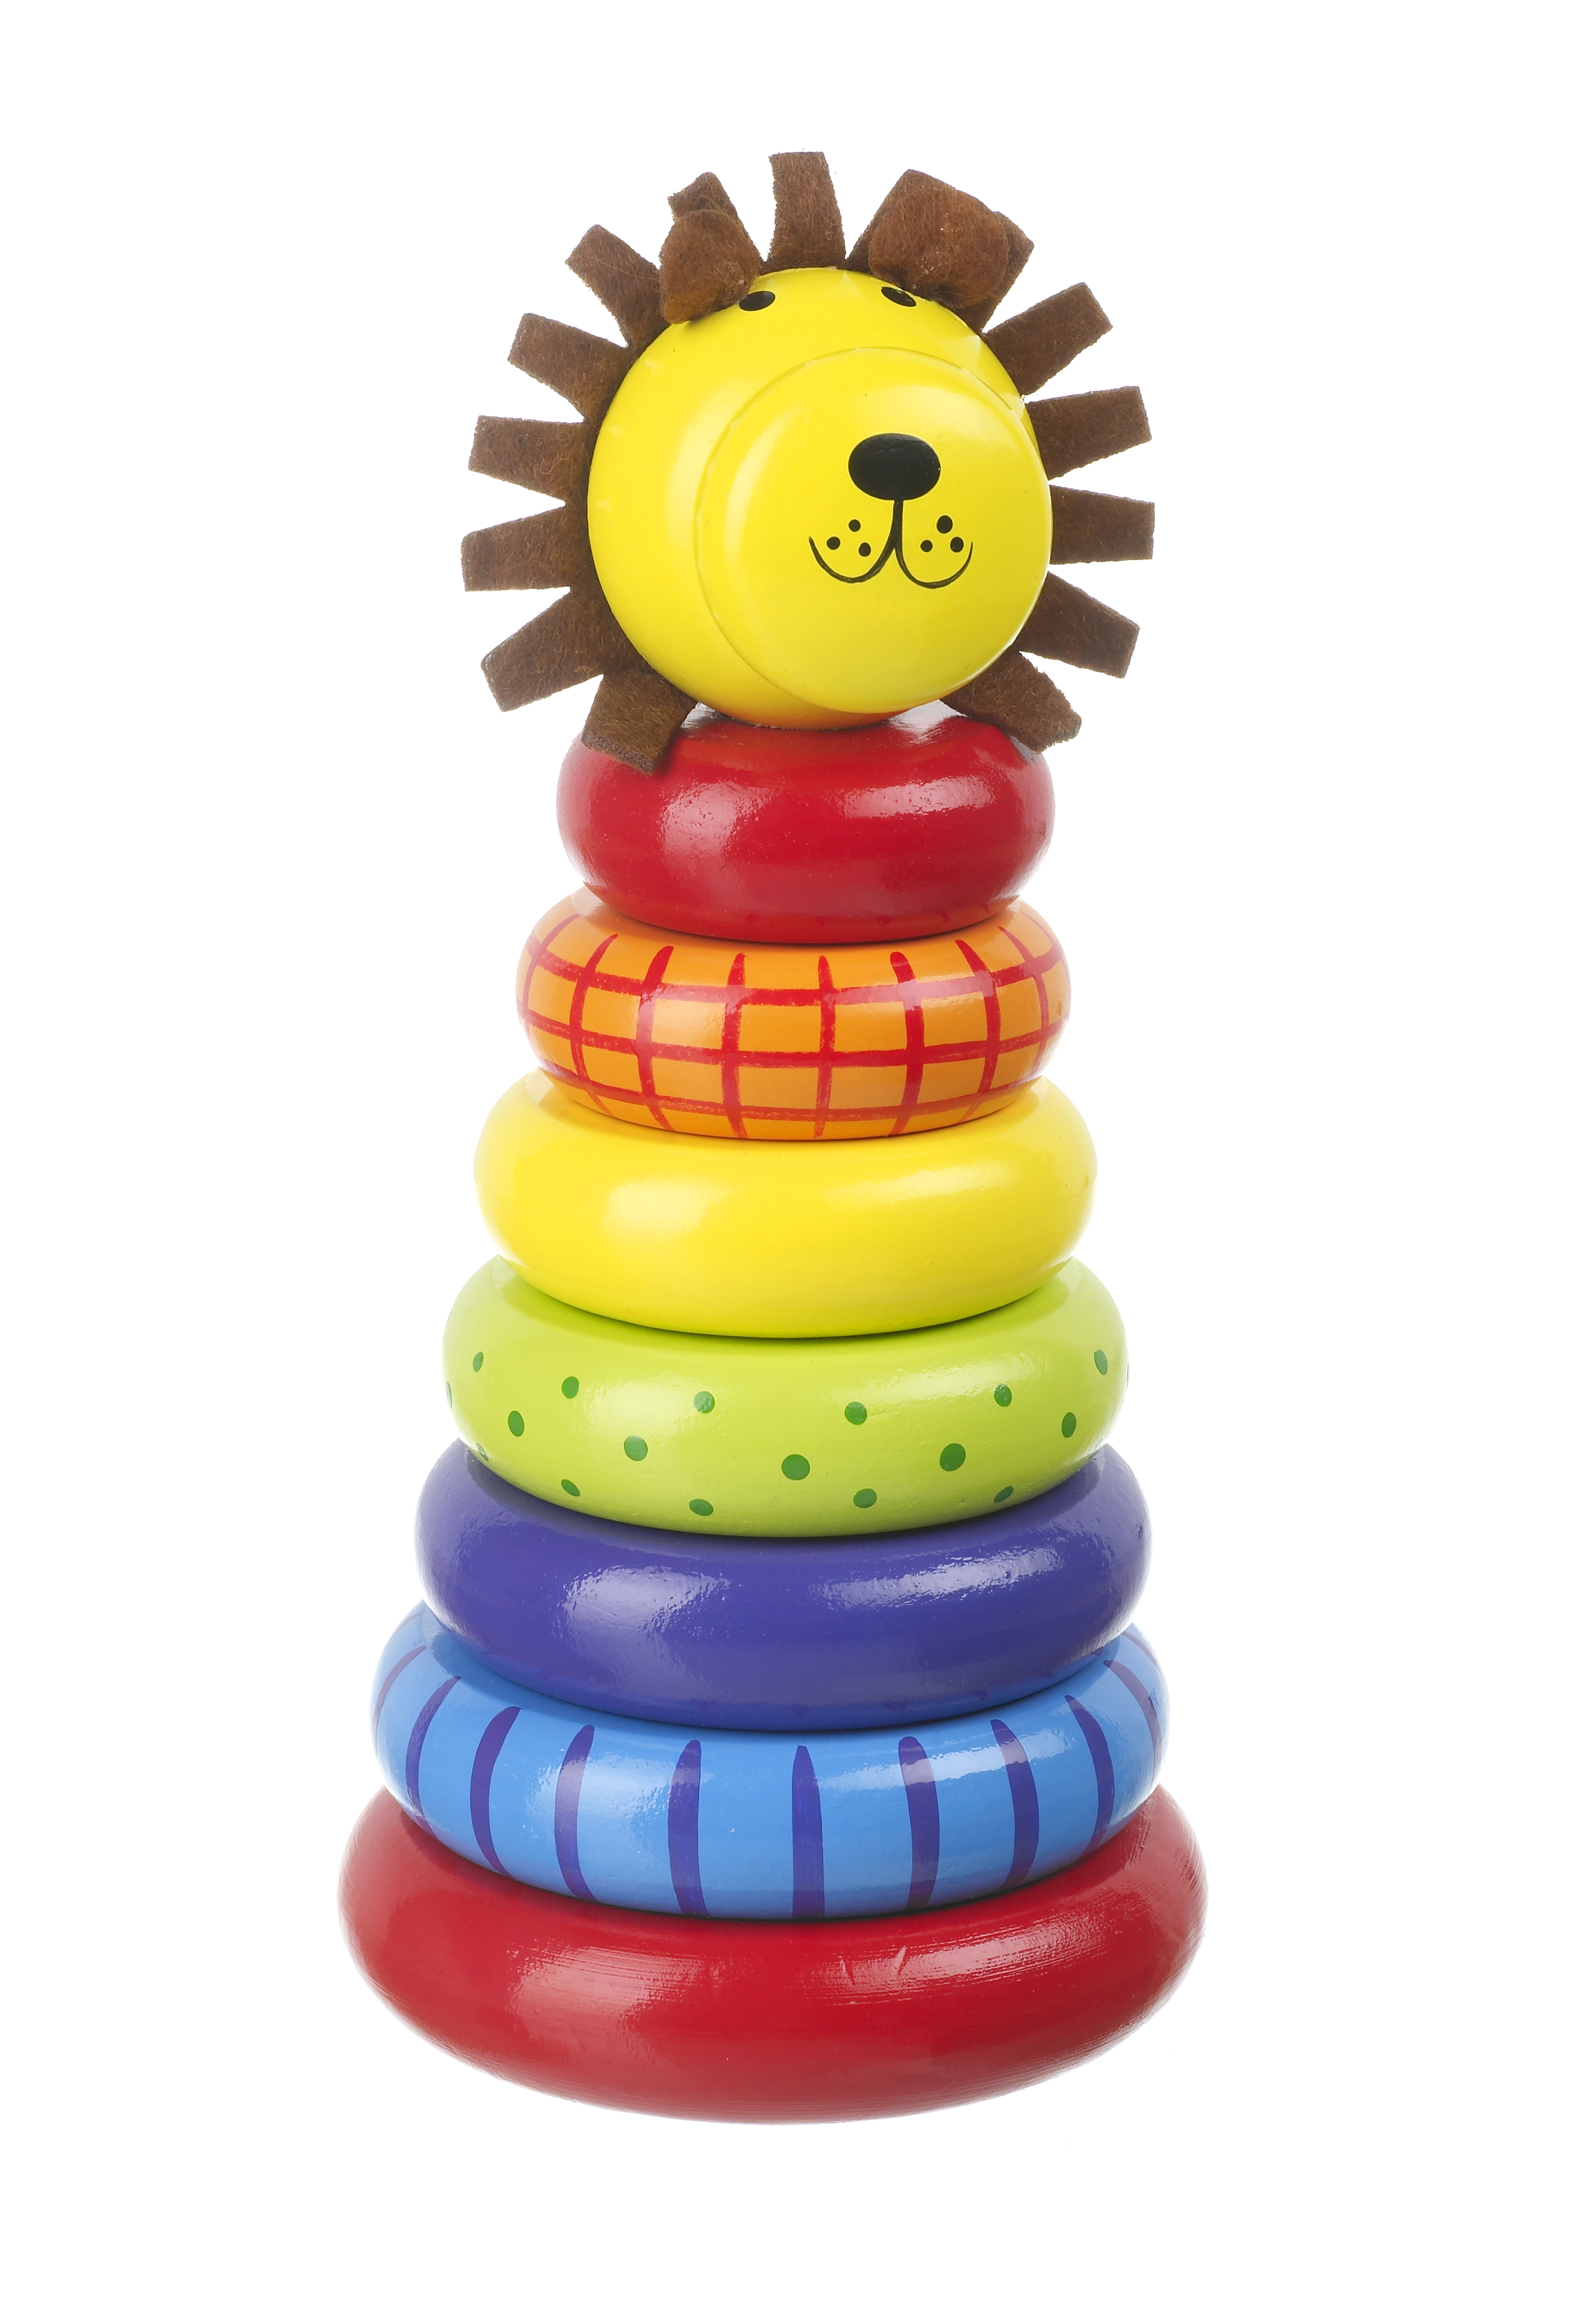 Stacking rings toys